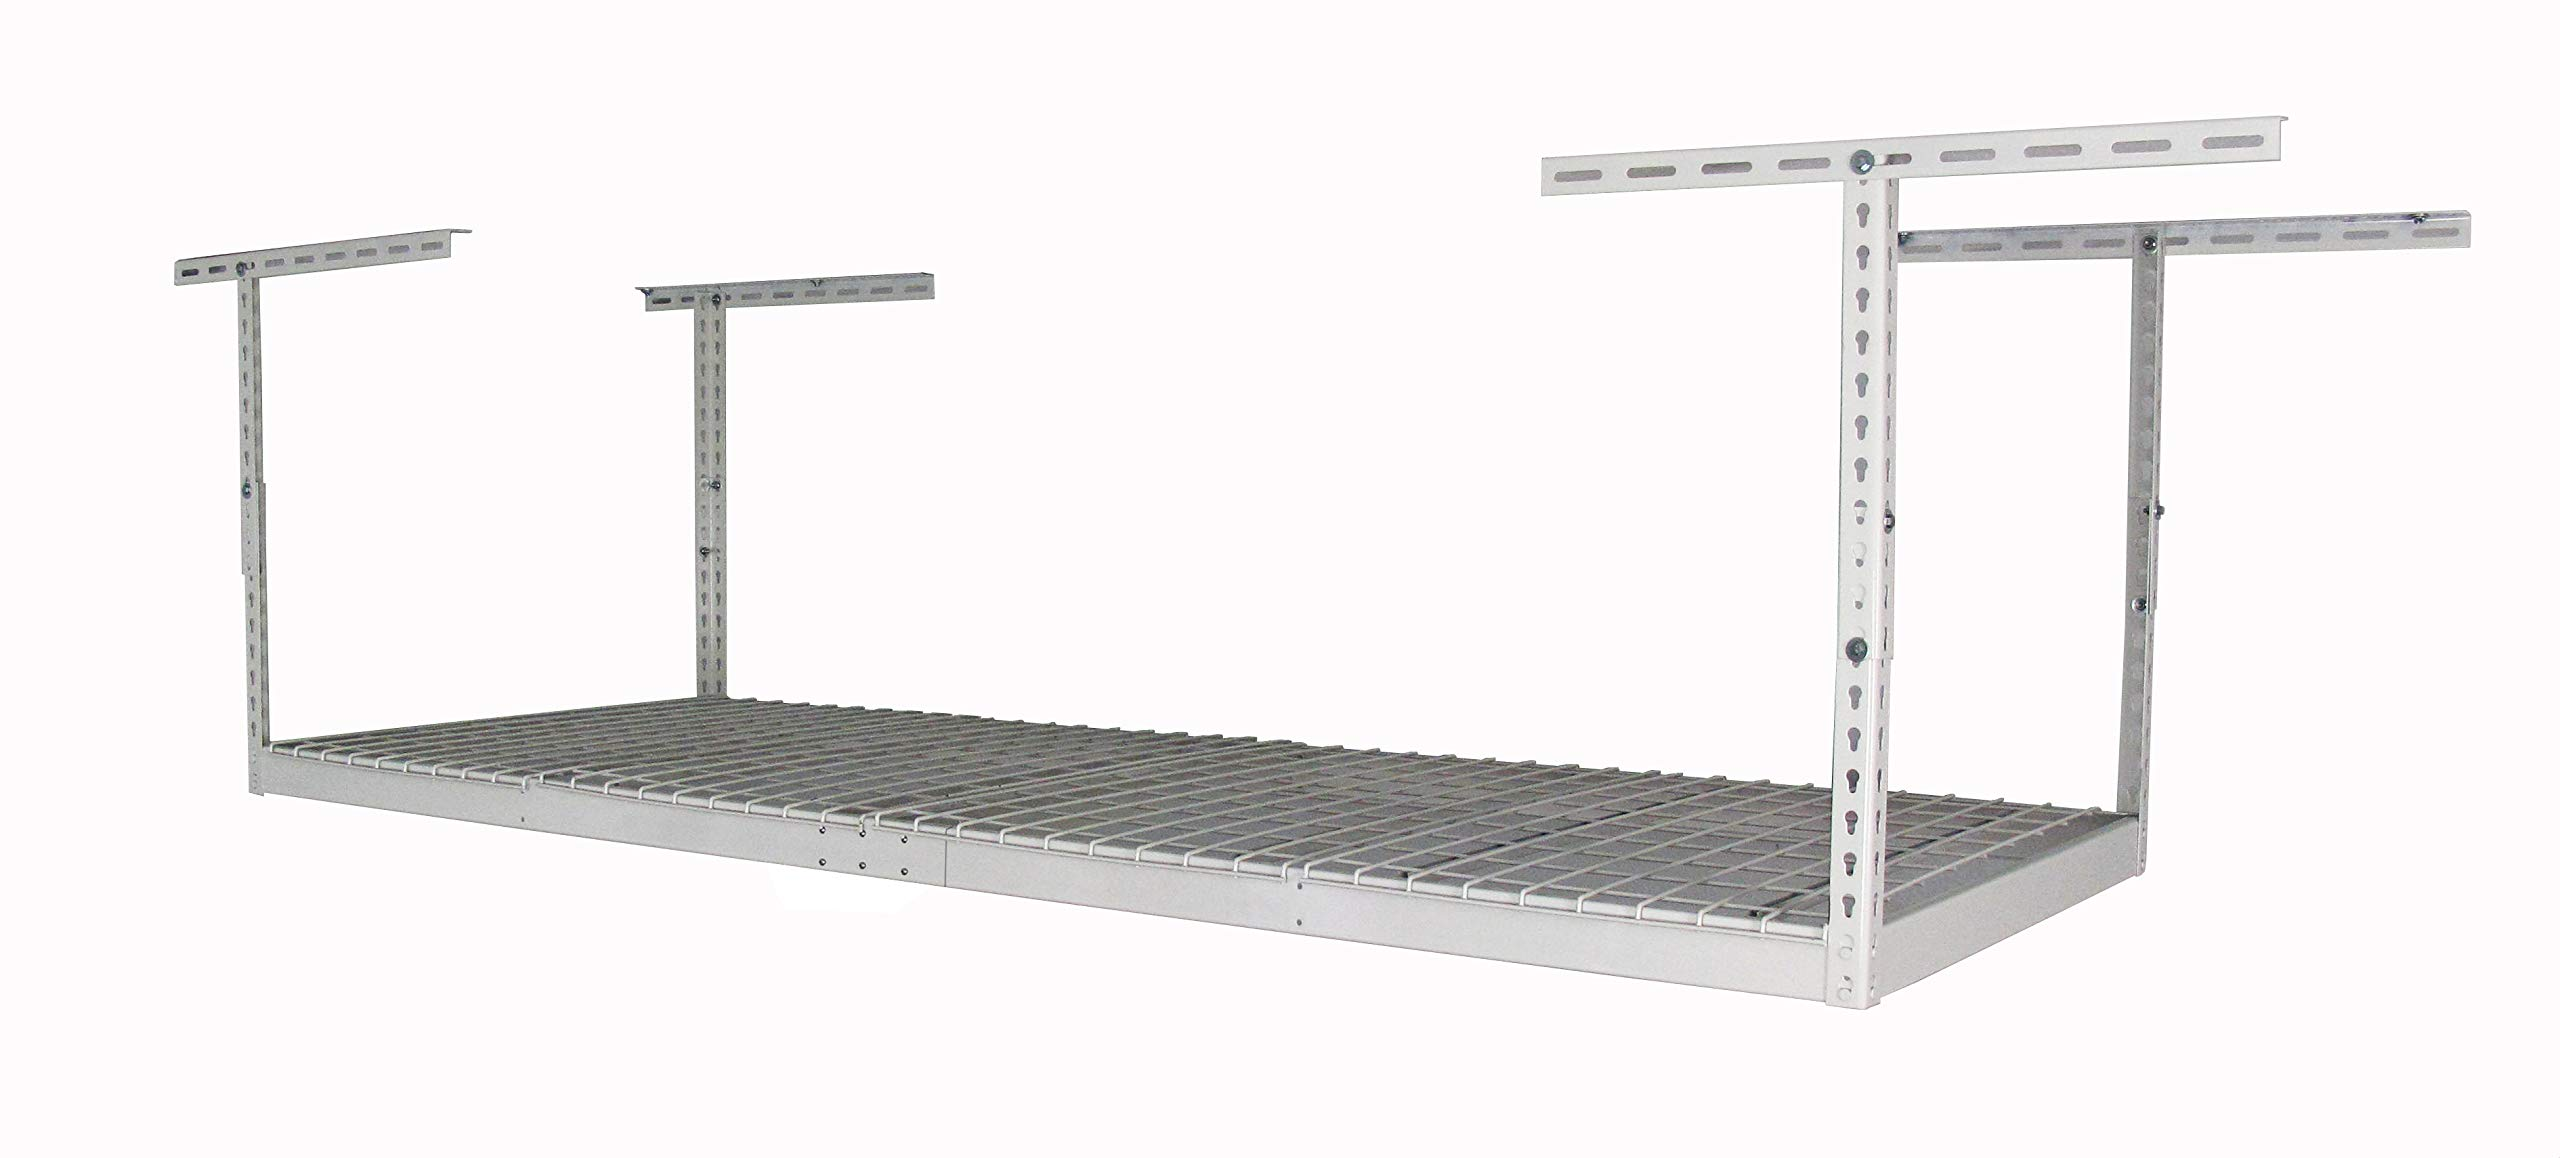 MonsterRAX - 3x8 Overhead Garage Storage Rack (24''-45'') by MonsterRax